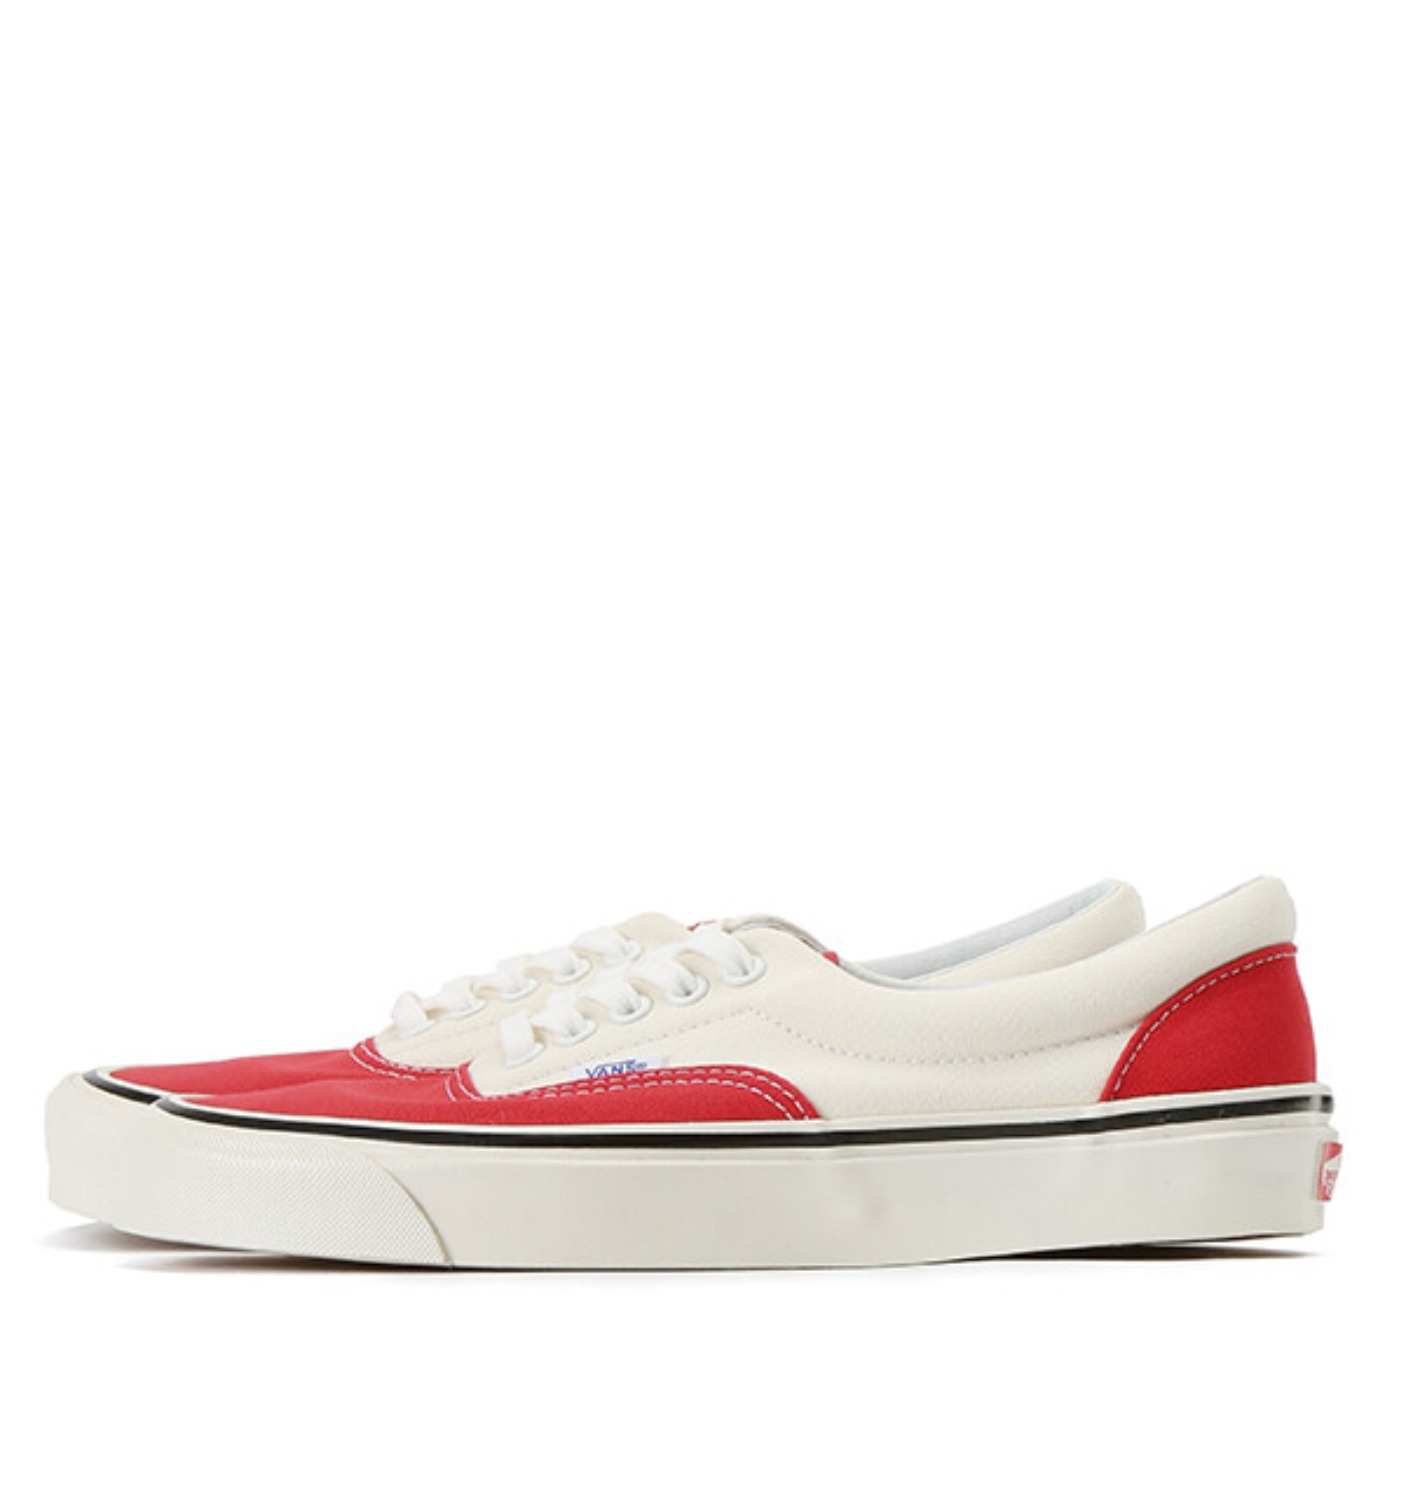 ANAHEIM ERA 95 DX OG RED/WHITE (VN0A2RR1U8Q)